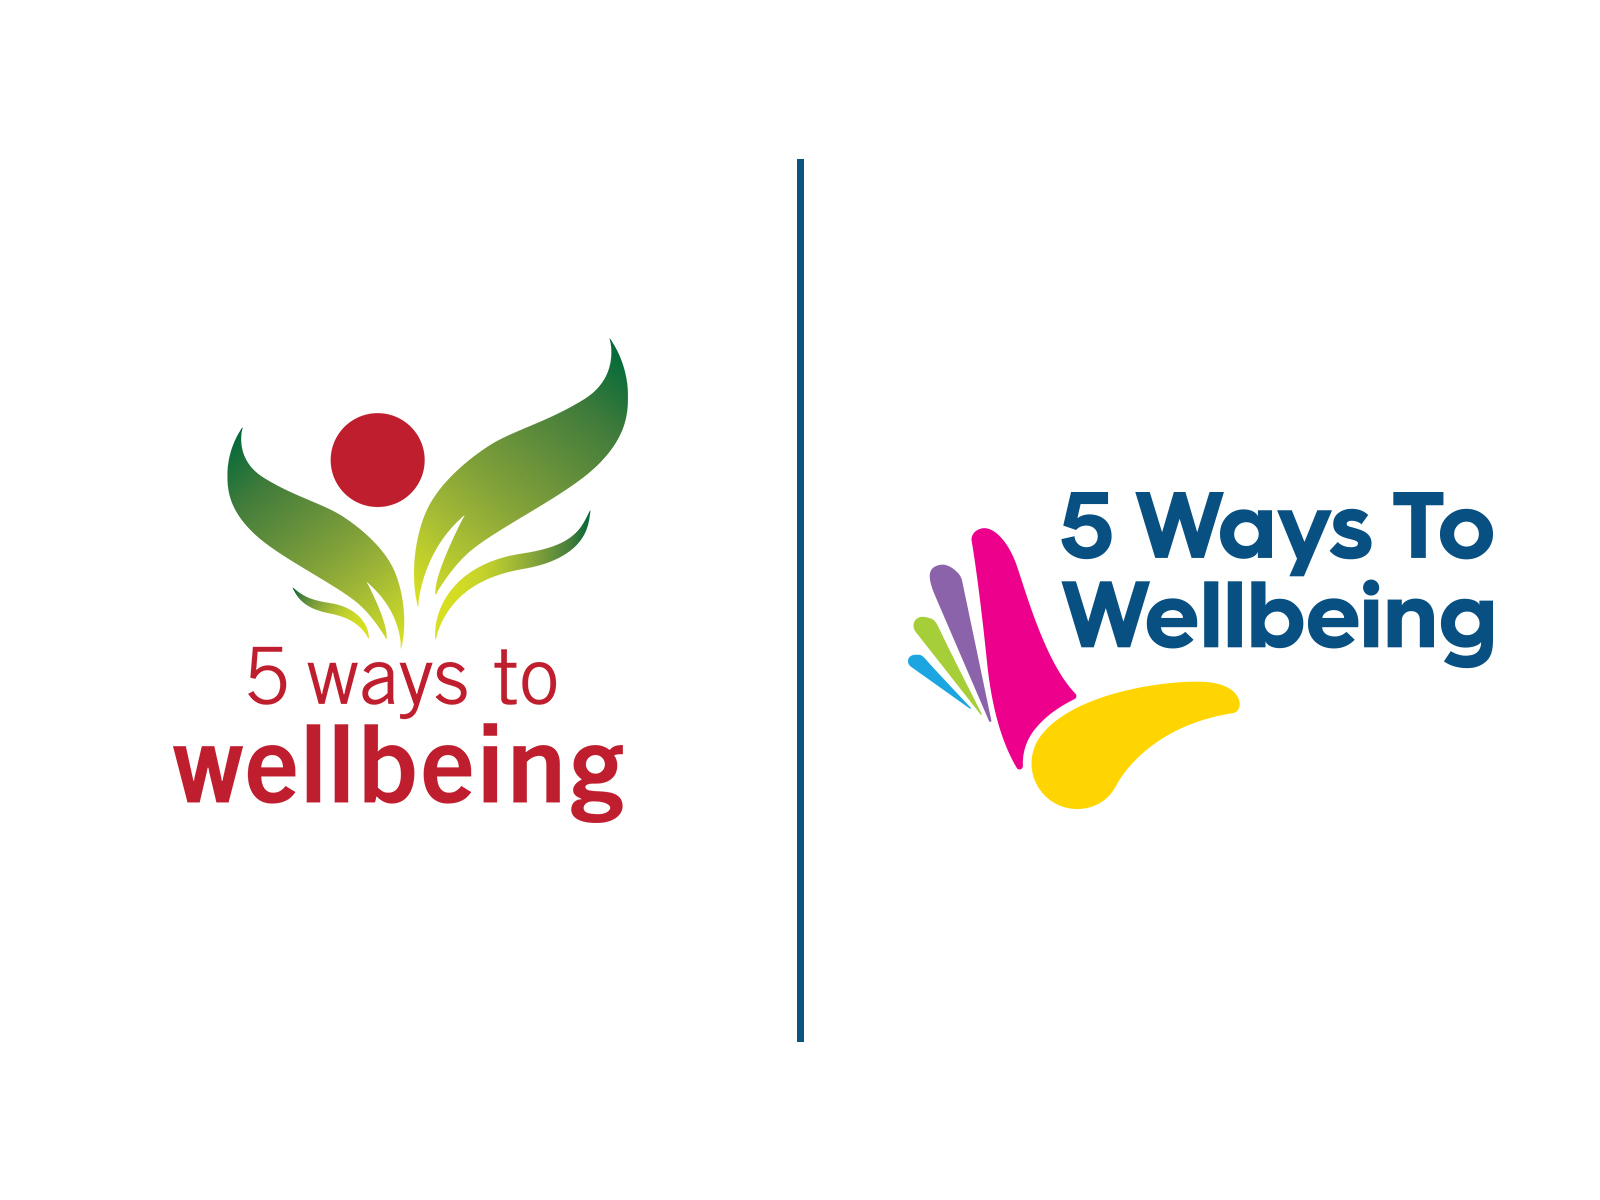 5 Ways to Wellbeing - Branding Update